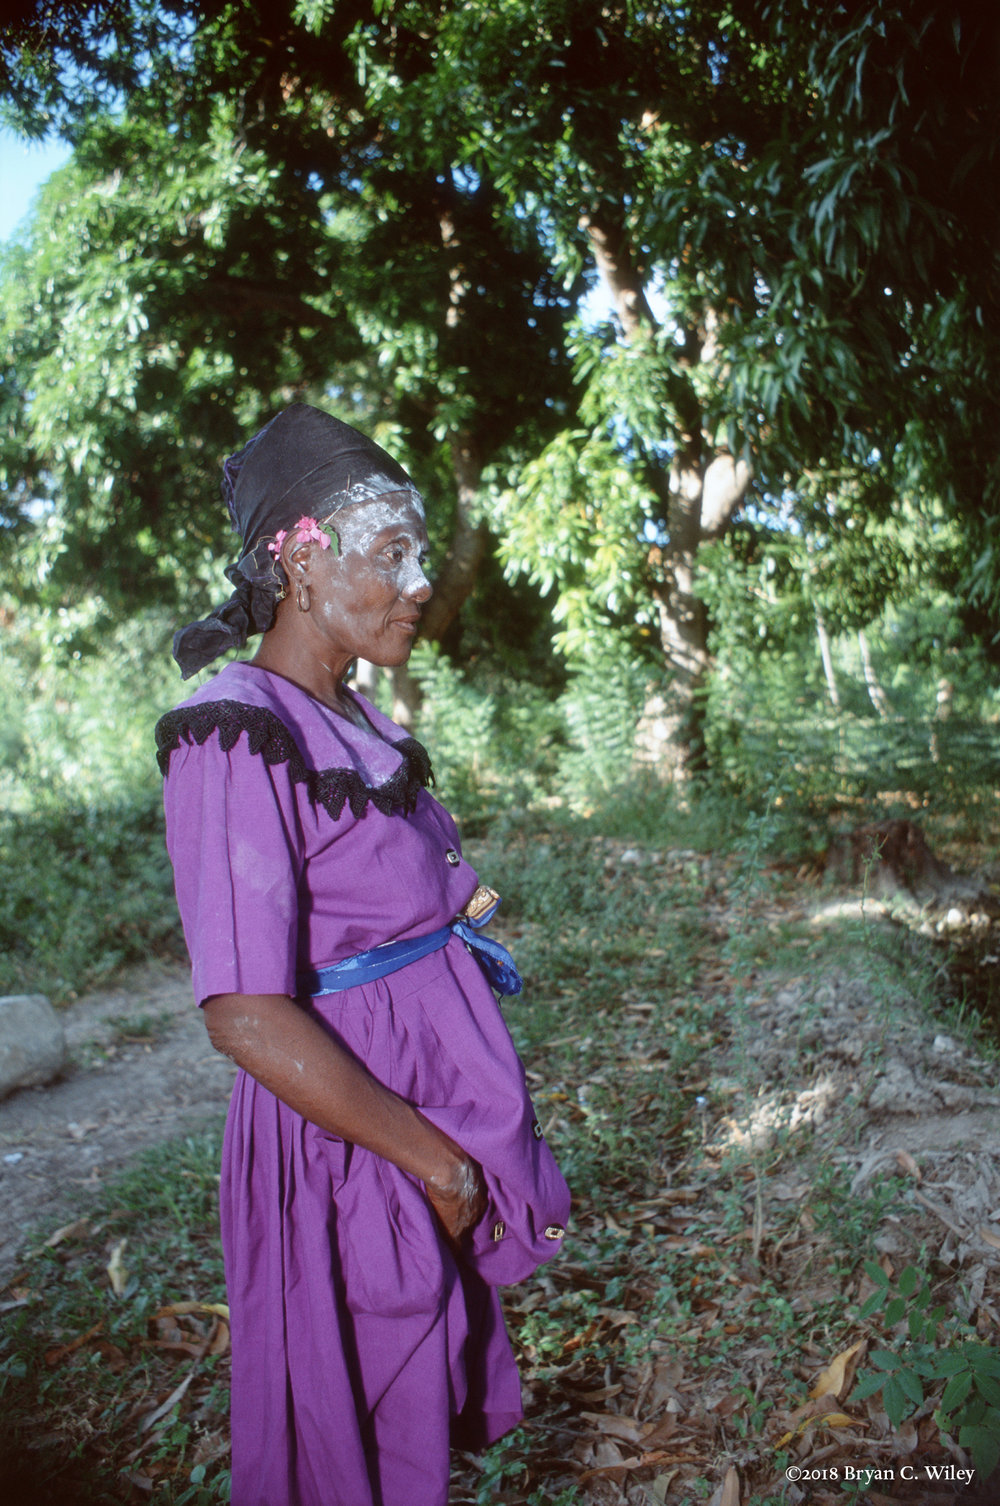 At an outdoor ceremony, the purple dress, large collar, and face covered in white like a corpse, imply this woman is a servant of Gede.  The Gede family are spirits of the dead representing the beginning and end of life.   Gonaives, Haiti